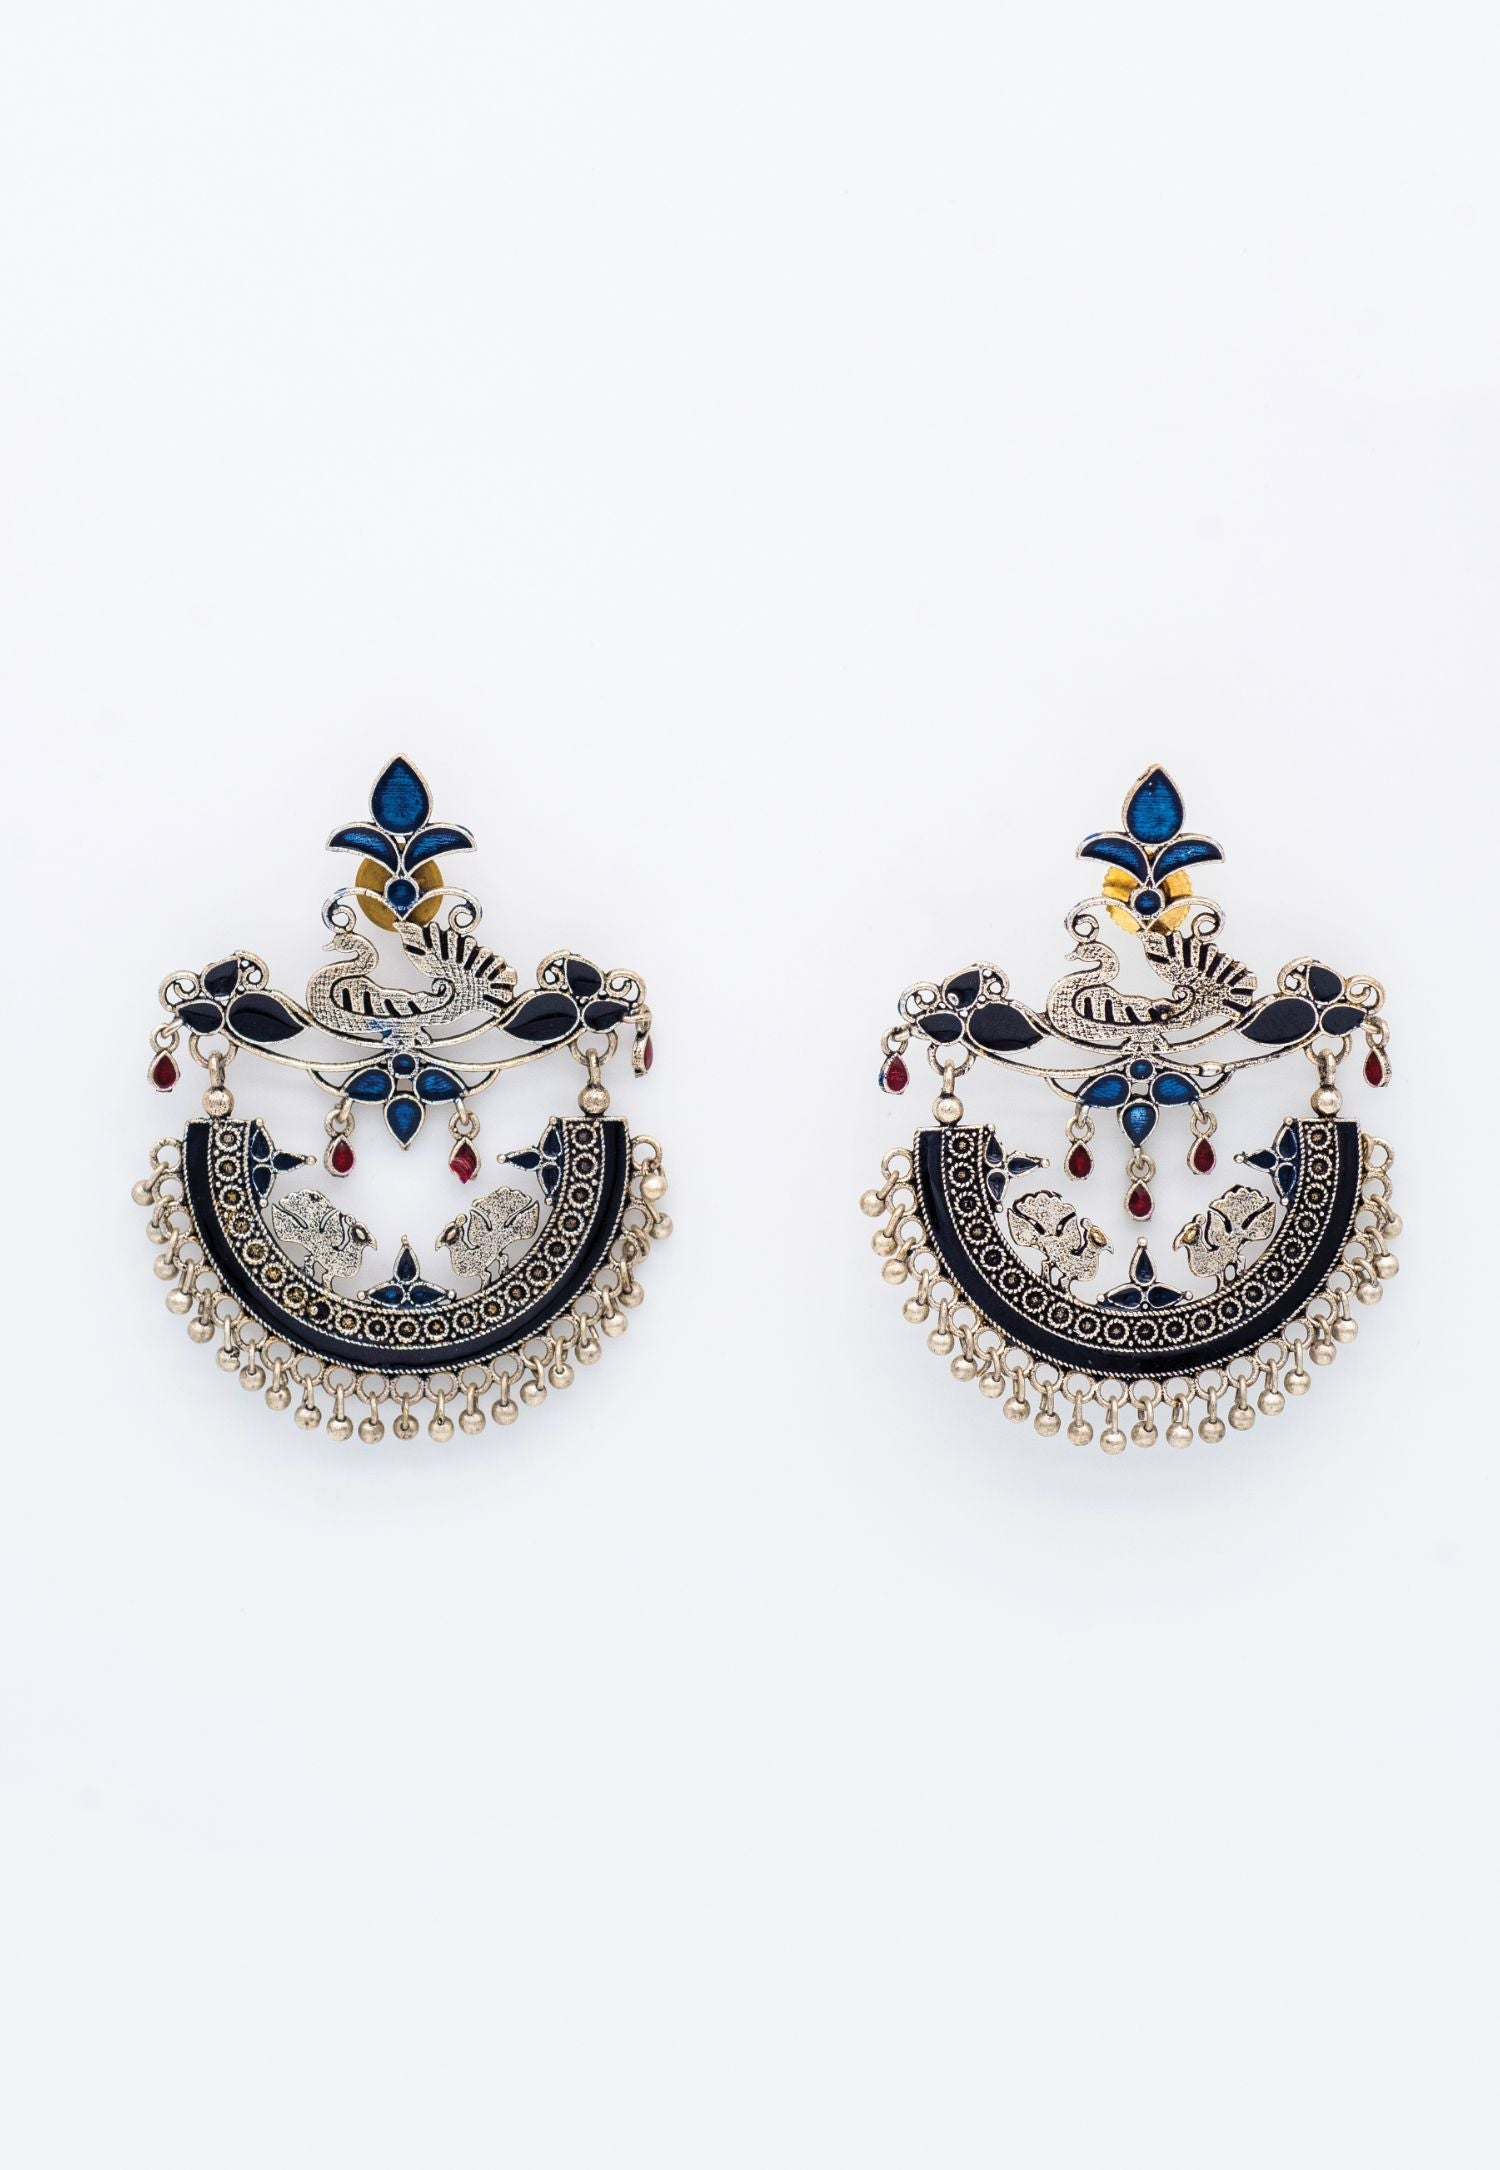 SILVER FOLK STYLE EARRINGS WITH BLUE ACCENTS